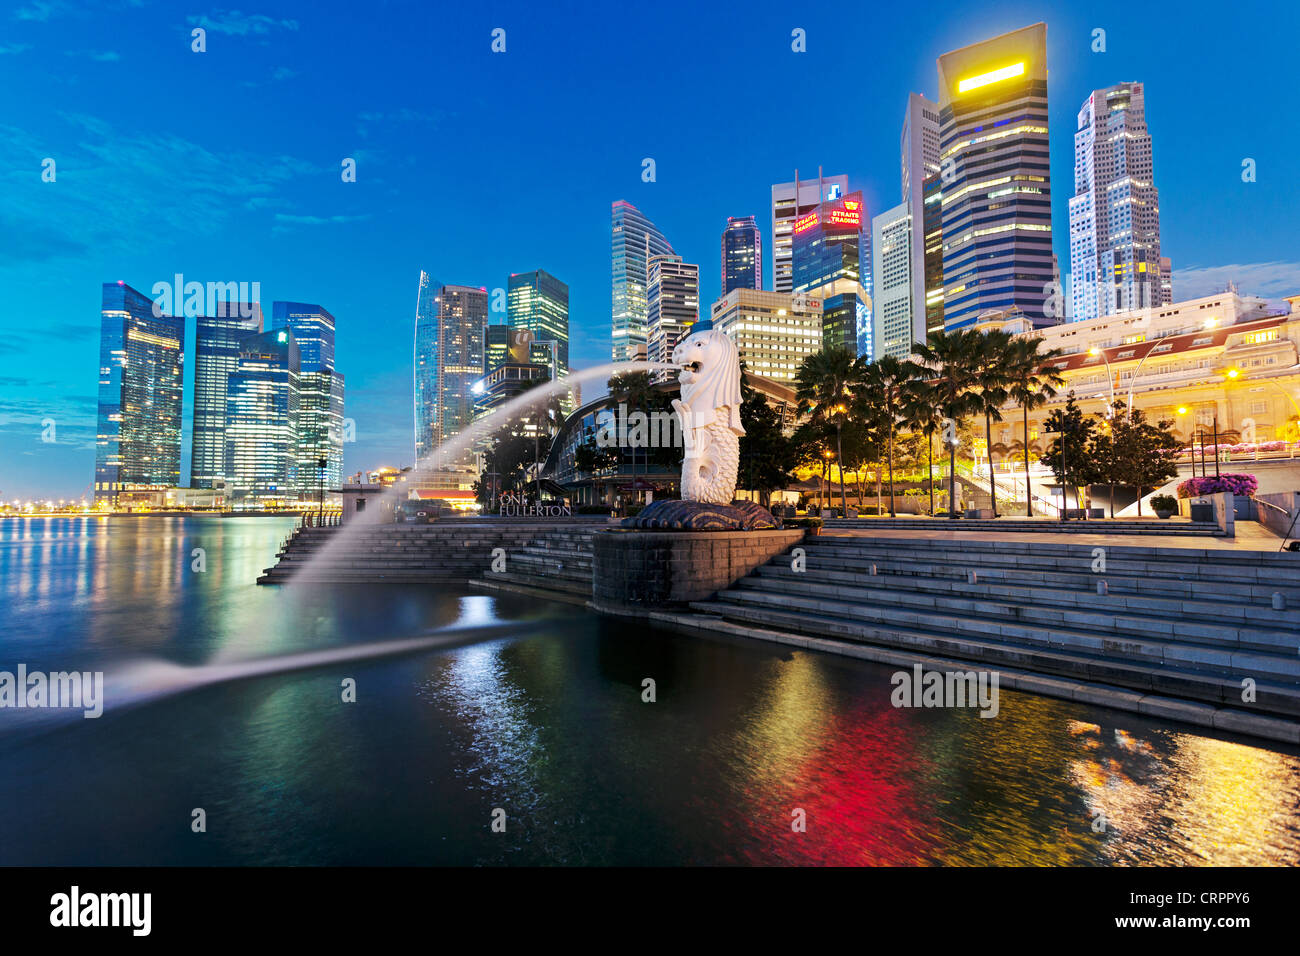 The Merlion Statue with the City Skyline in the background, Marina Bay, Singapore, South East Asia Stock Photo